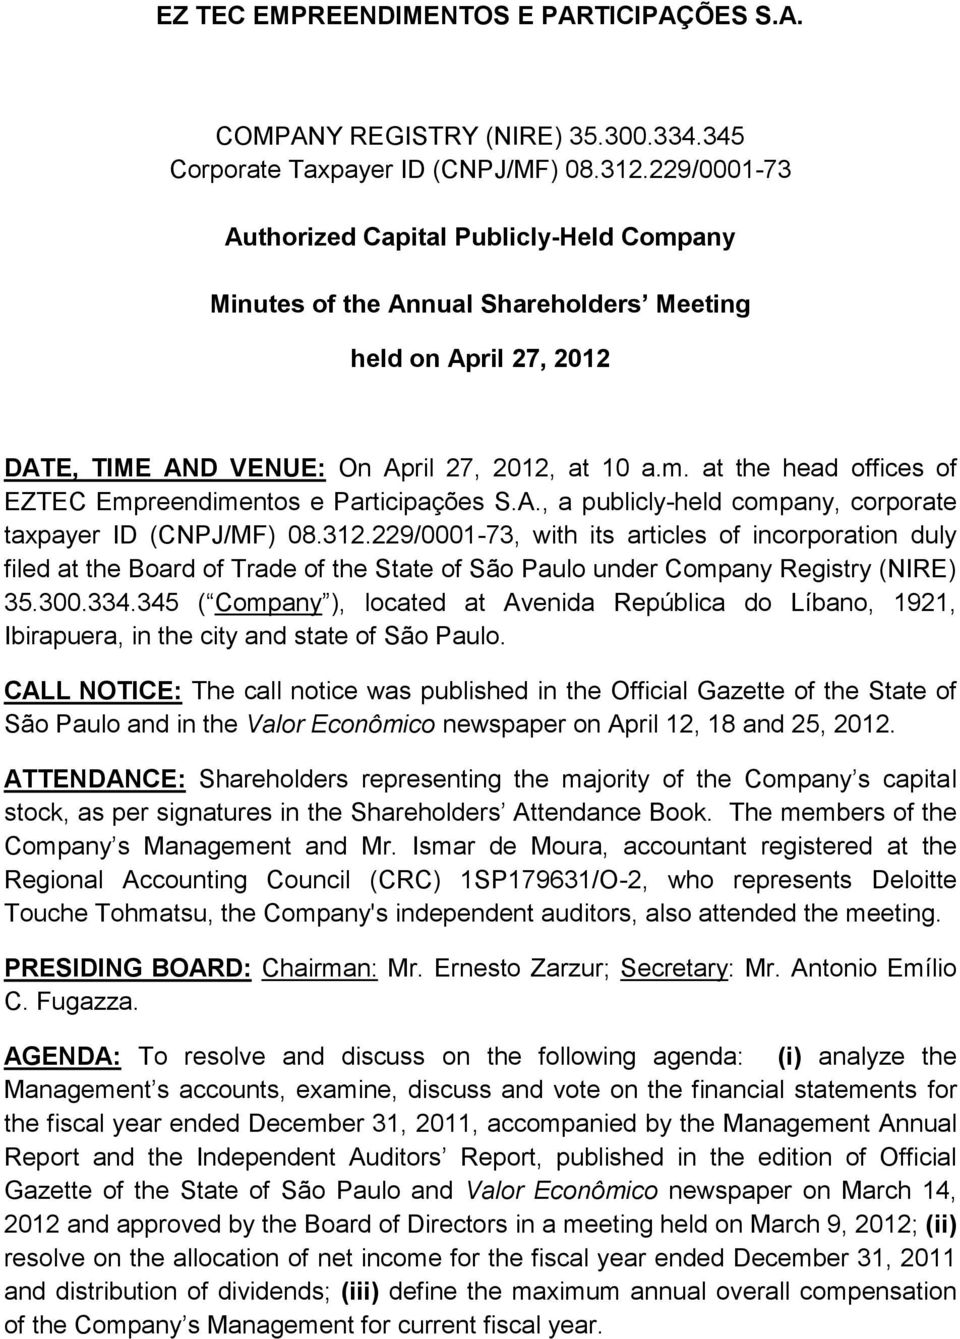 A., a publicly-held company, corporate taxpayer ID (CNPJ/MF) 08.312.